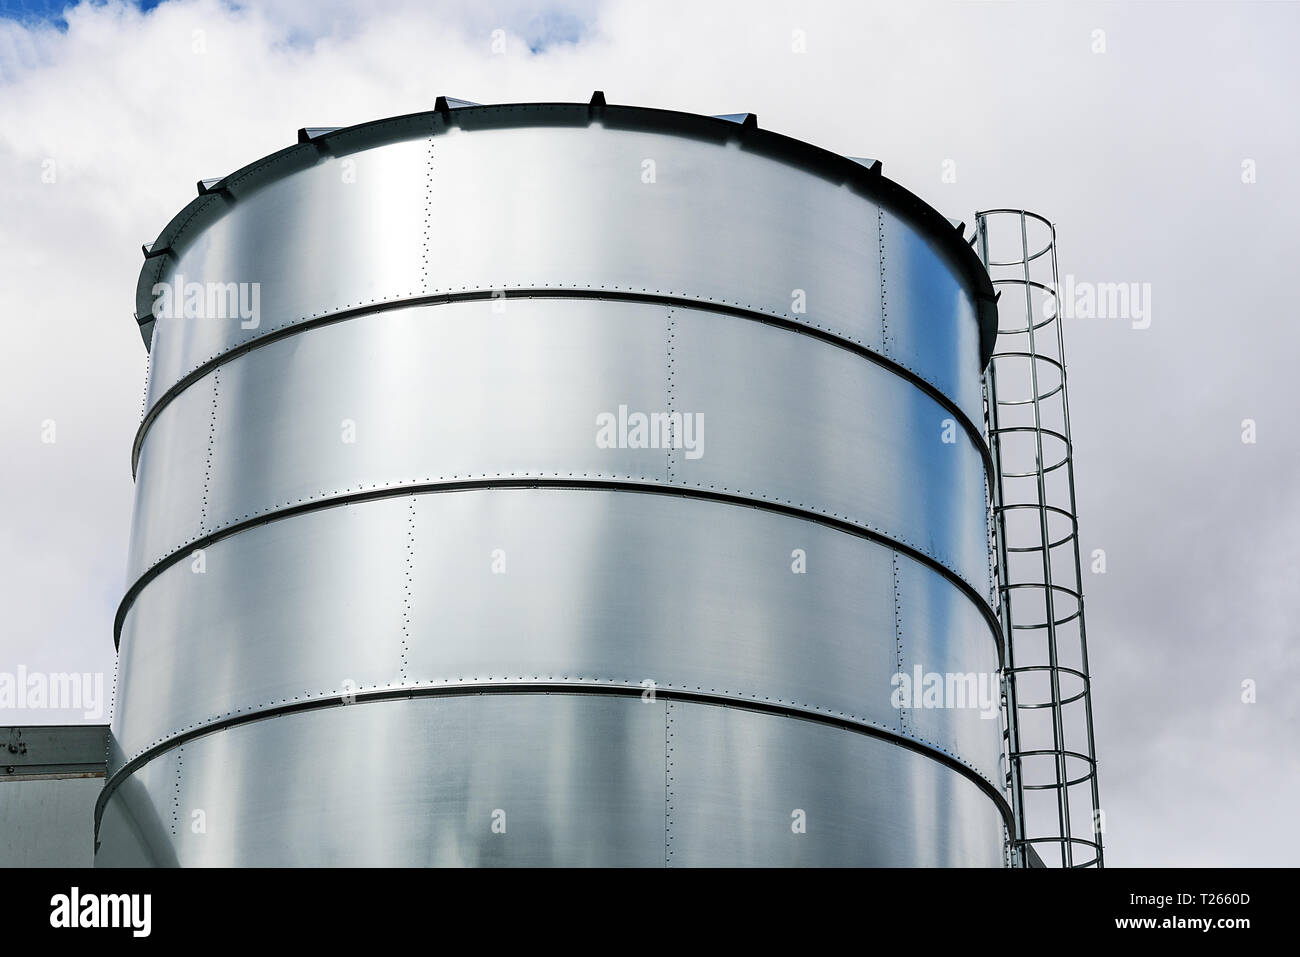 Agriculture Industry equipment - large modern silo for storing grain harvest in close-up. Stock Photo